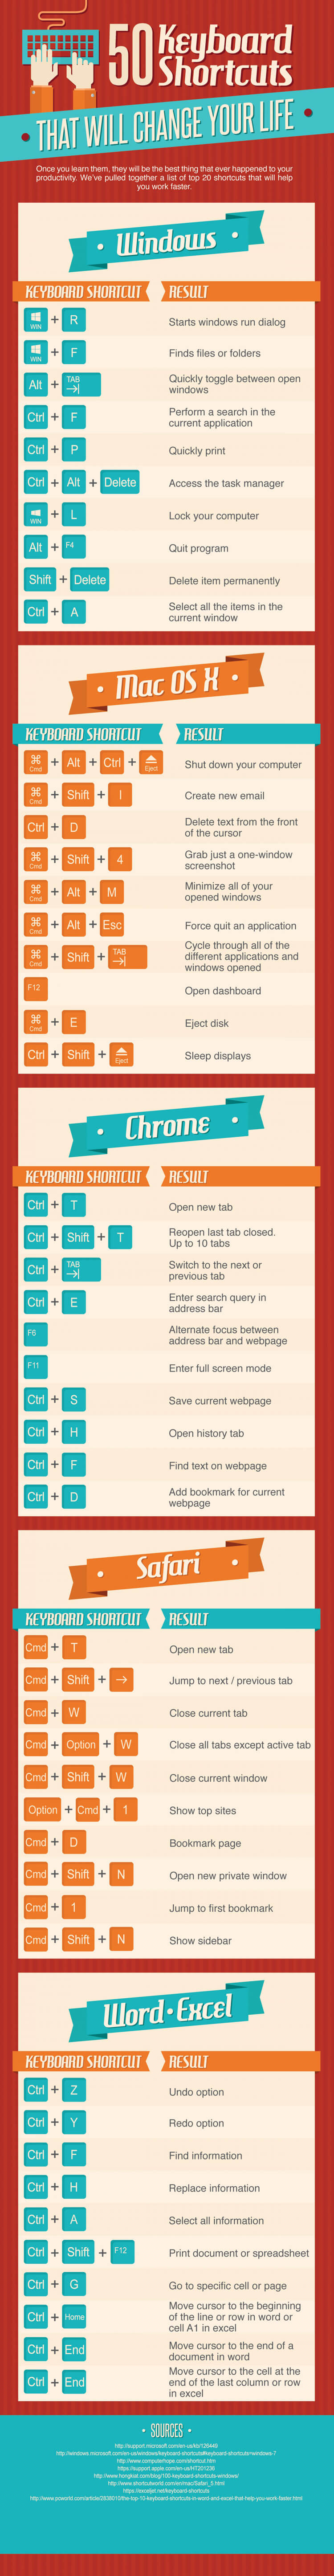 50-keyboard-shortcuts-which-will-change-your-life-infographic